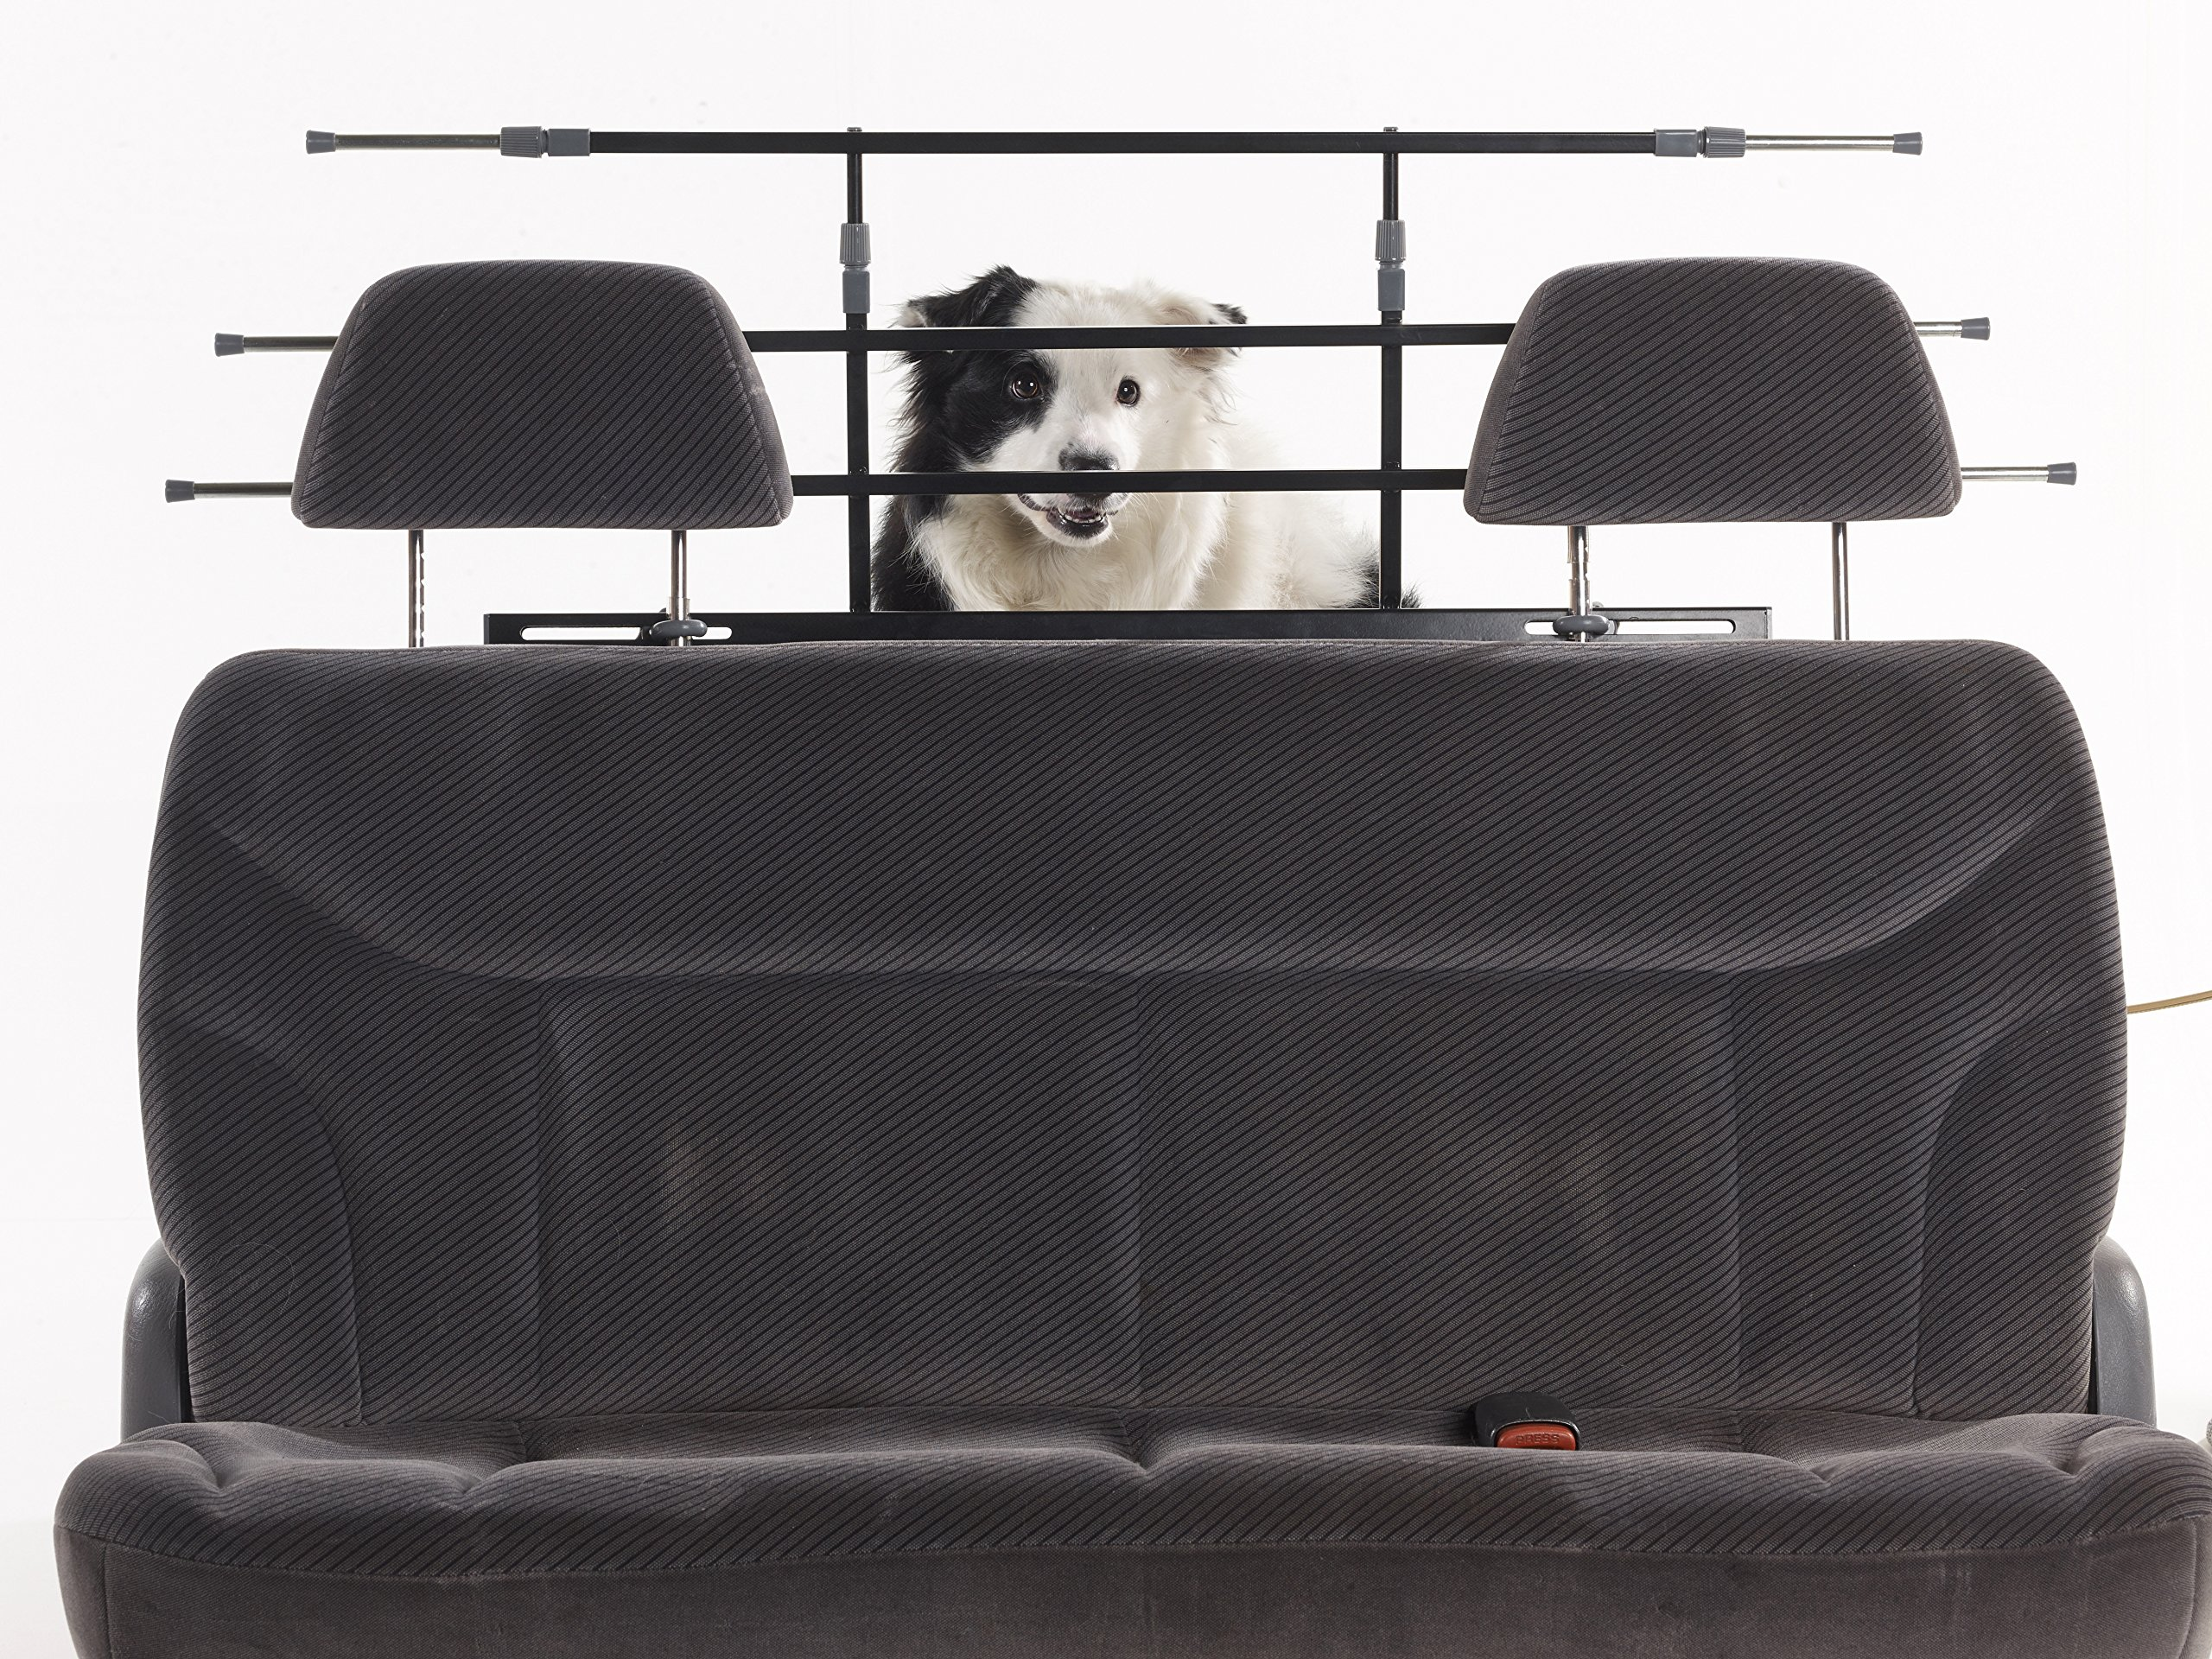 Petego K9 Guard Universal Pet Safety Barrier by Petego (Image #4)